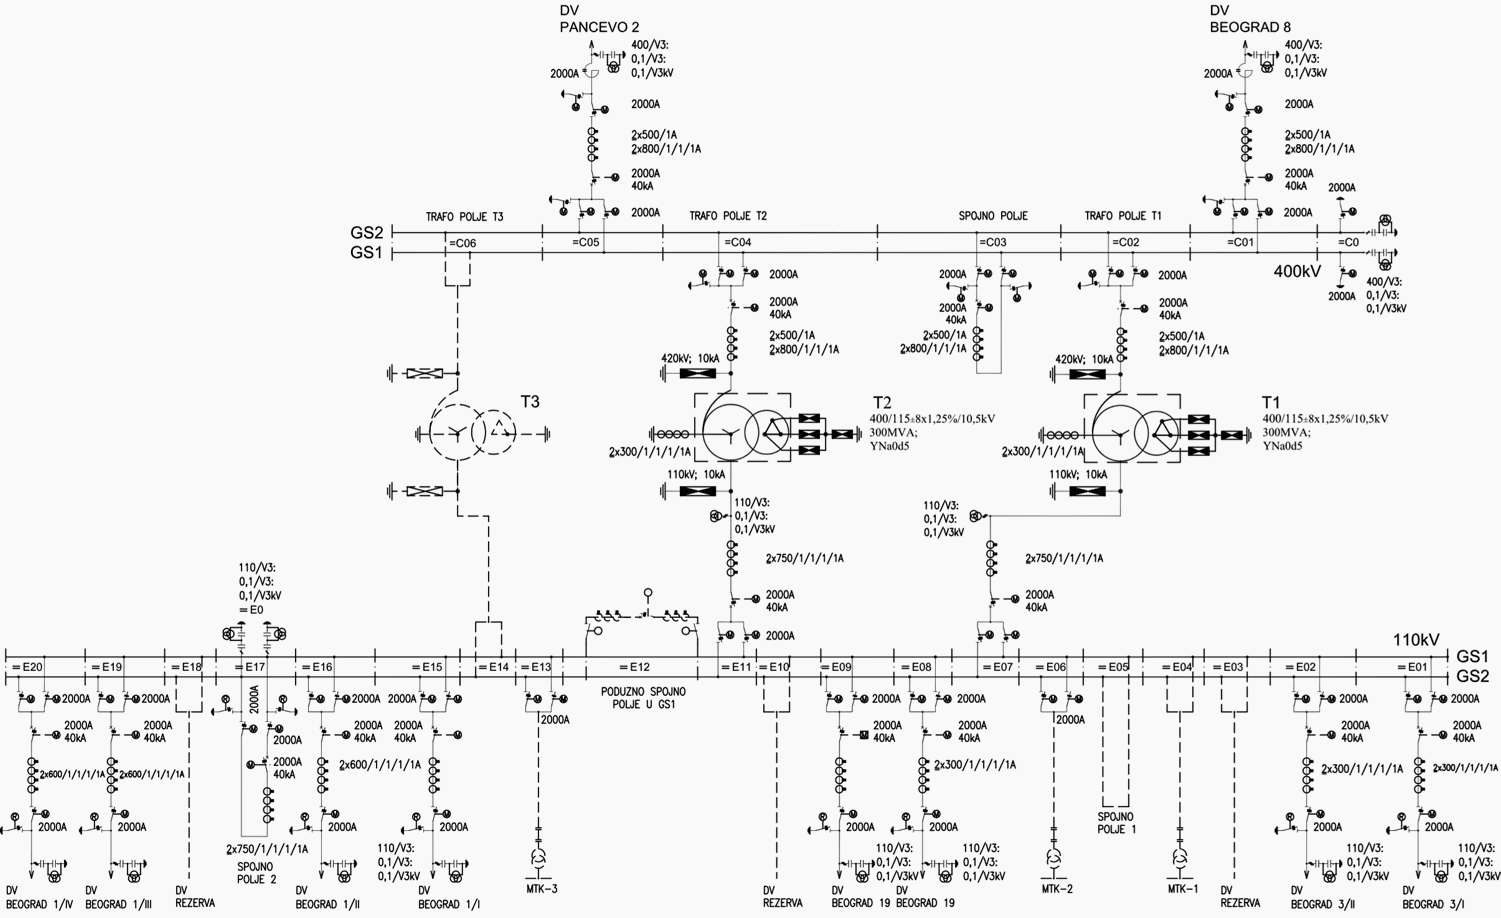 electrical wiring diagram symbols list getting things done workflow pdf 7 design diagrams that hv substation engineer must understand   eep